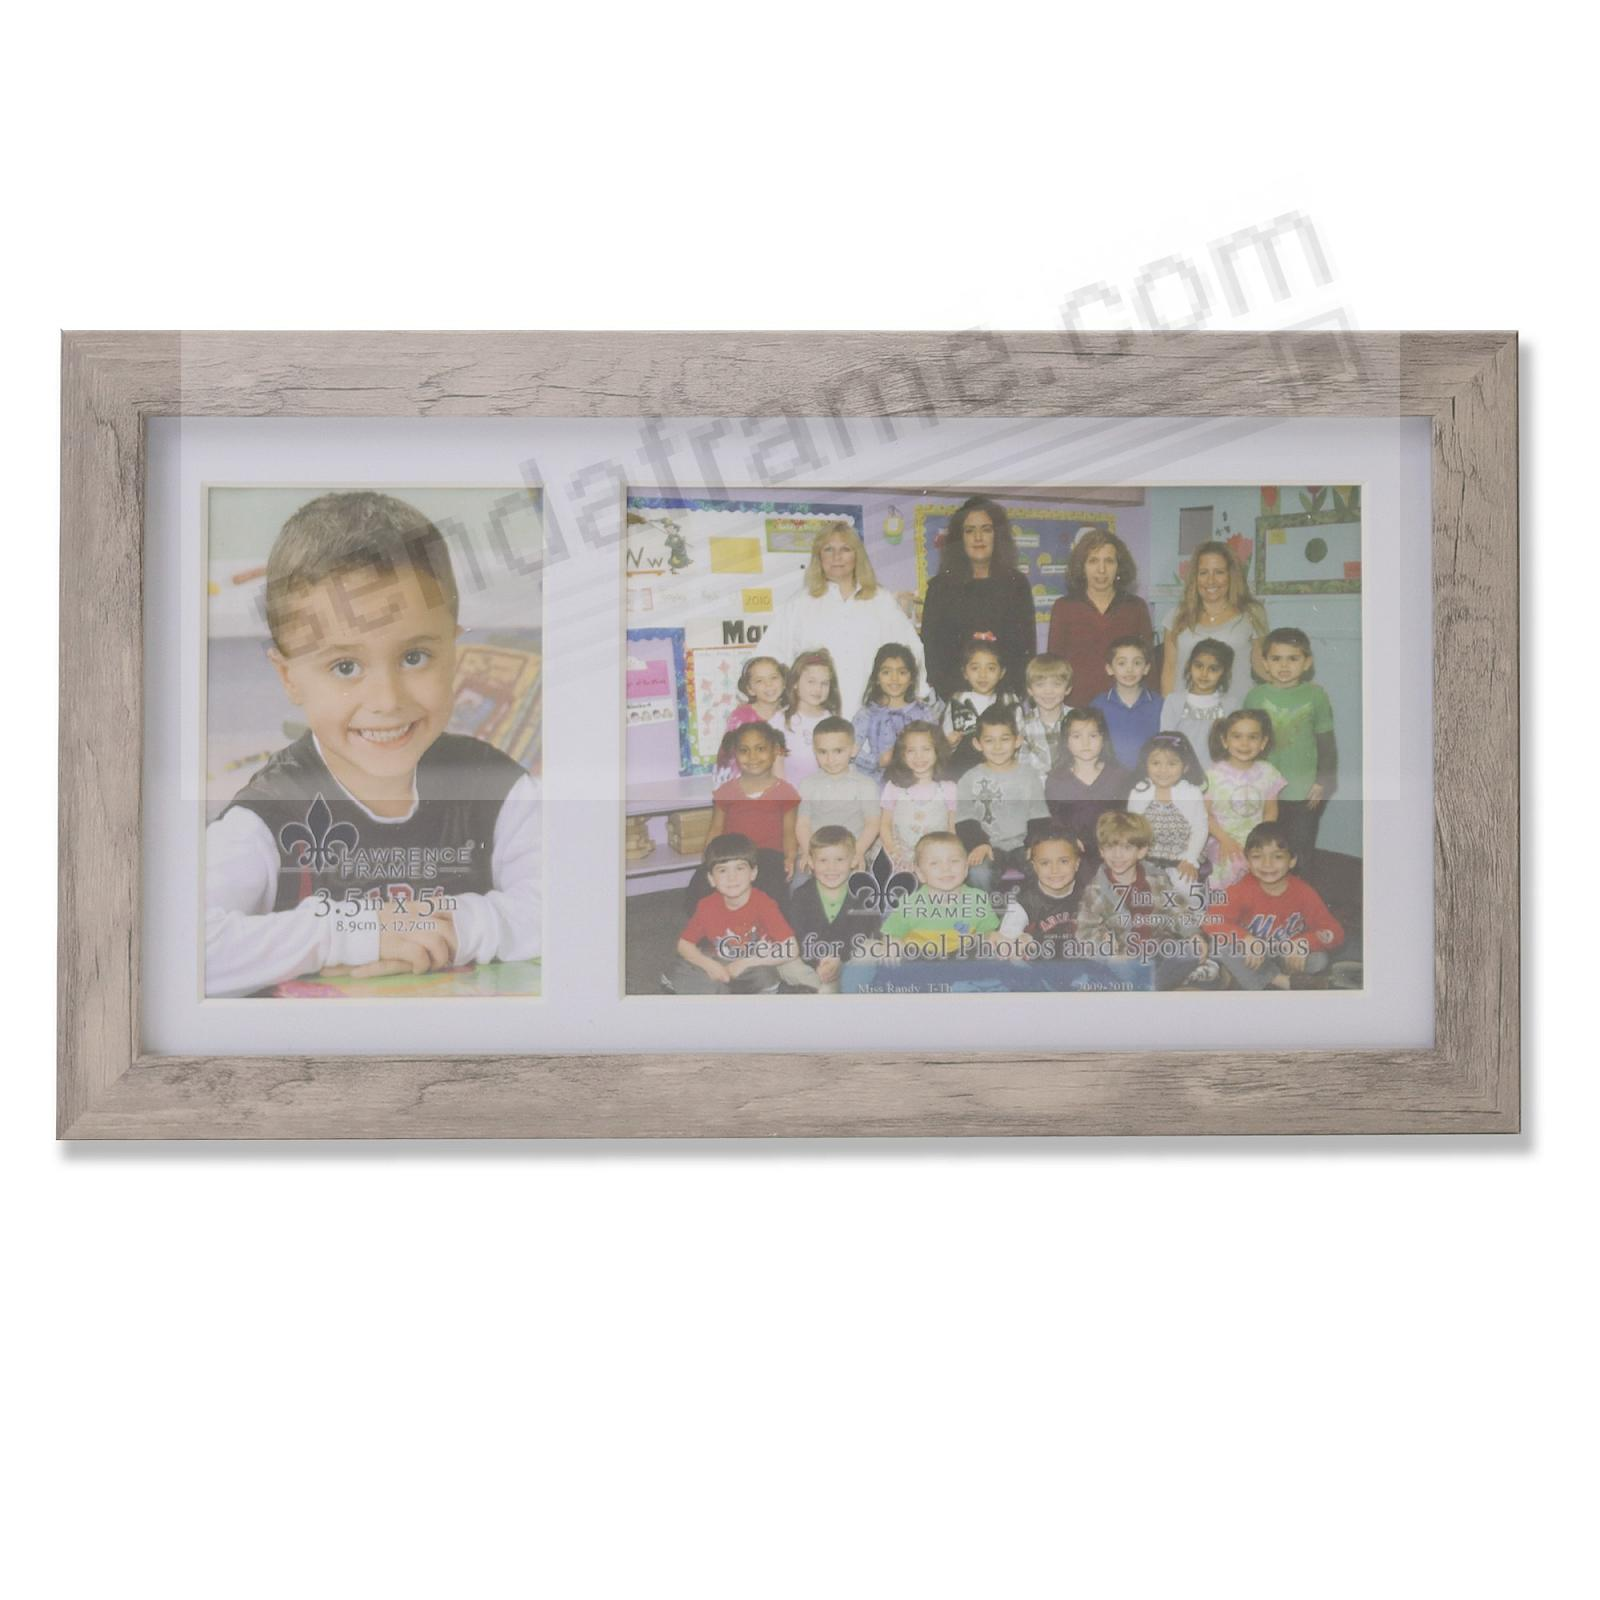 Our Team Natural Collage frame 3½x5/7x5 instantly personalizes your group